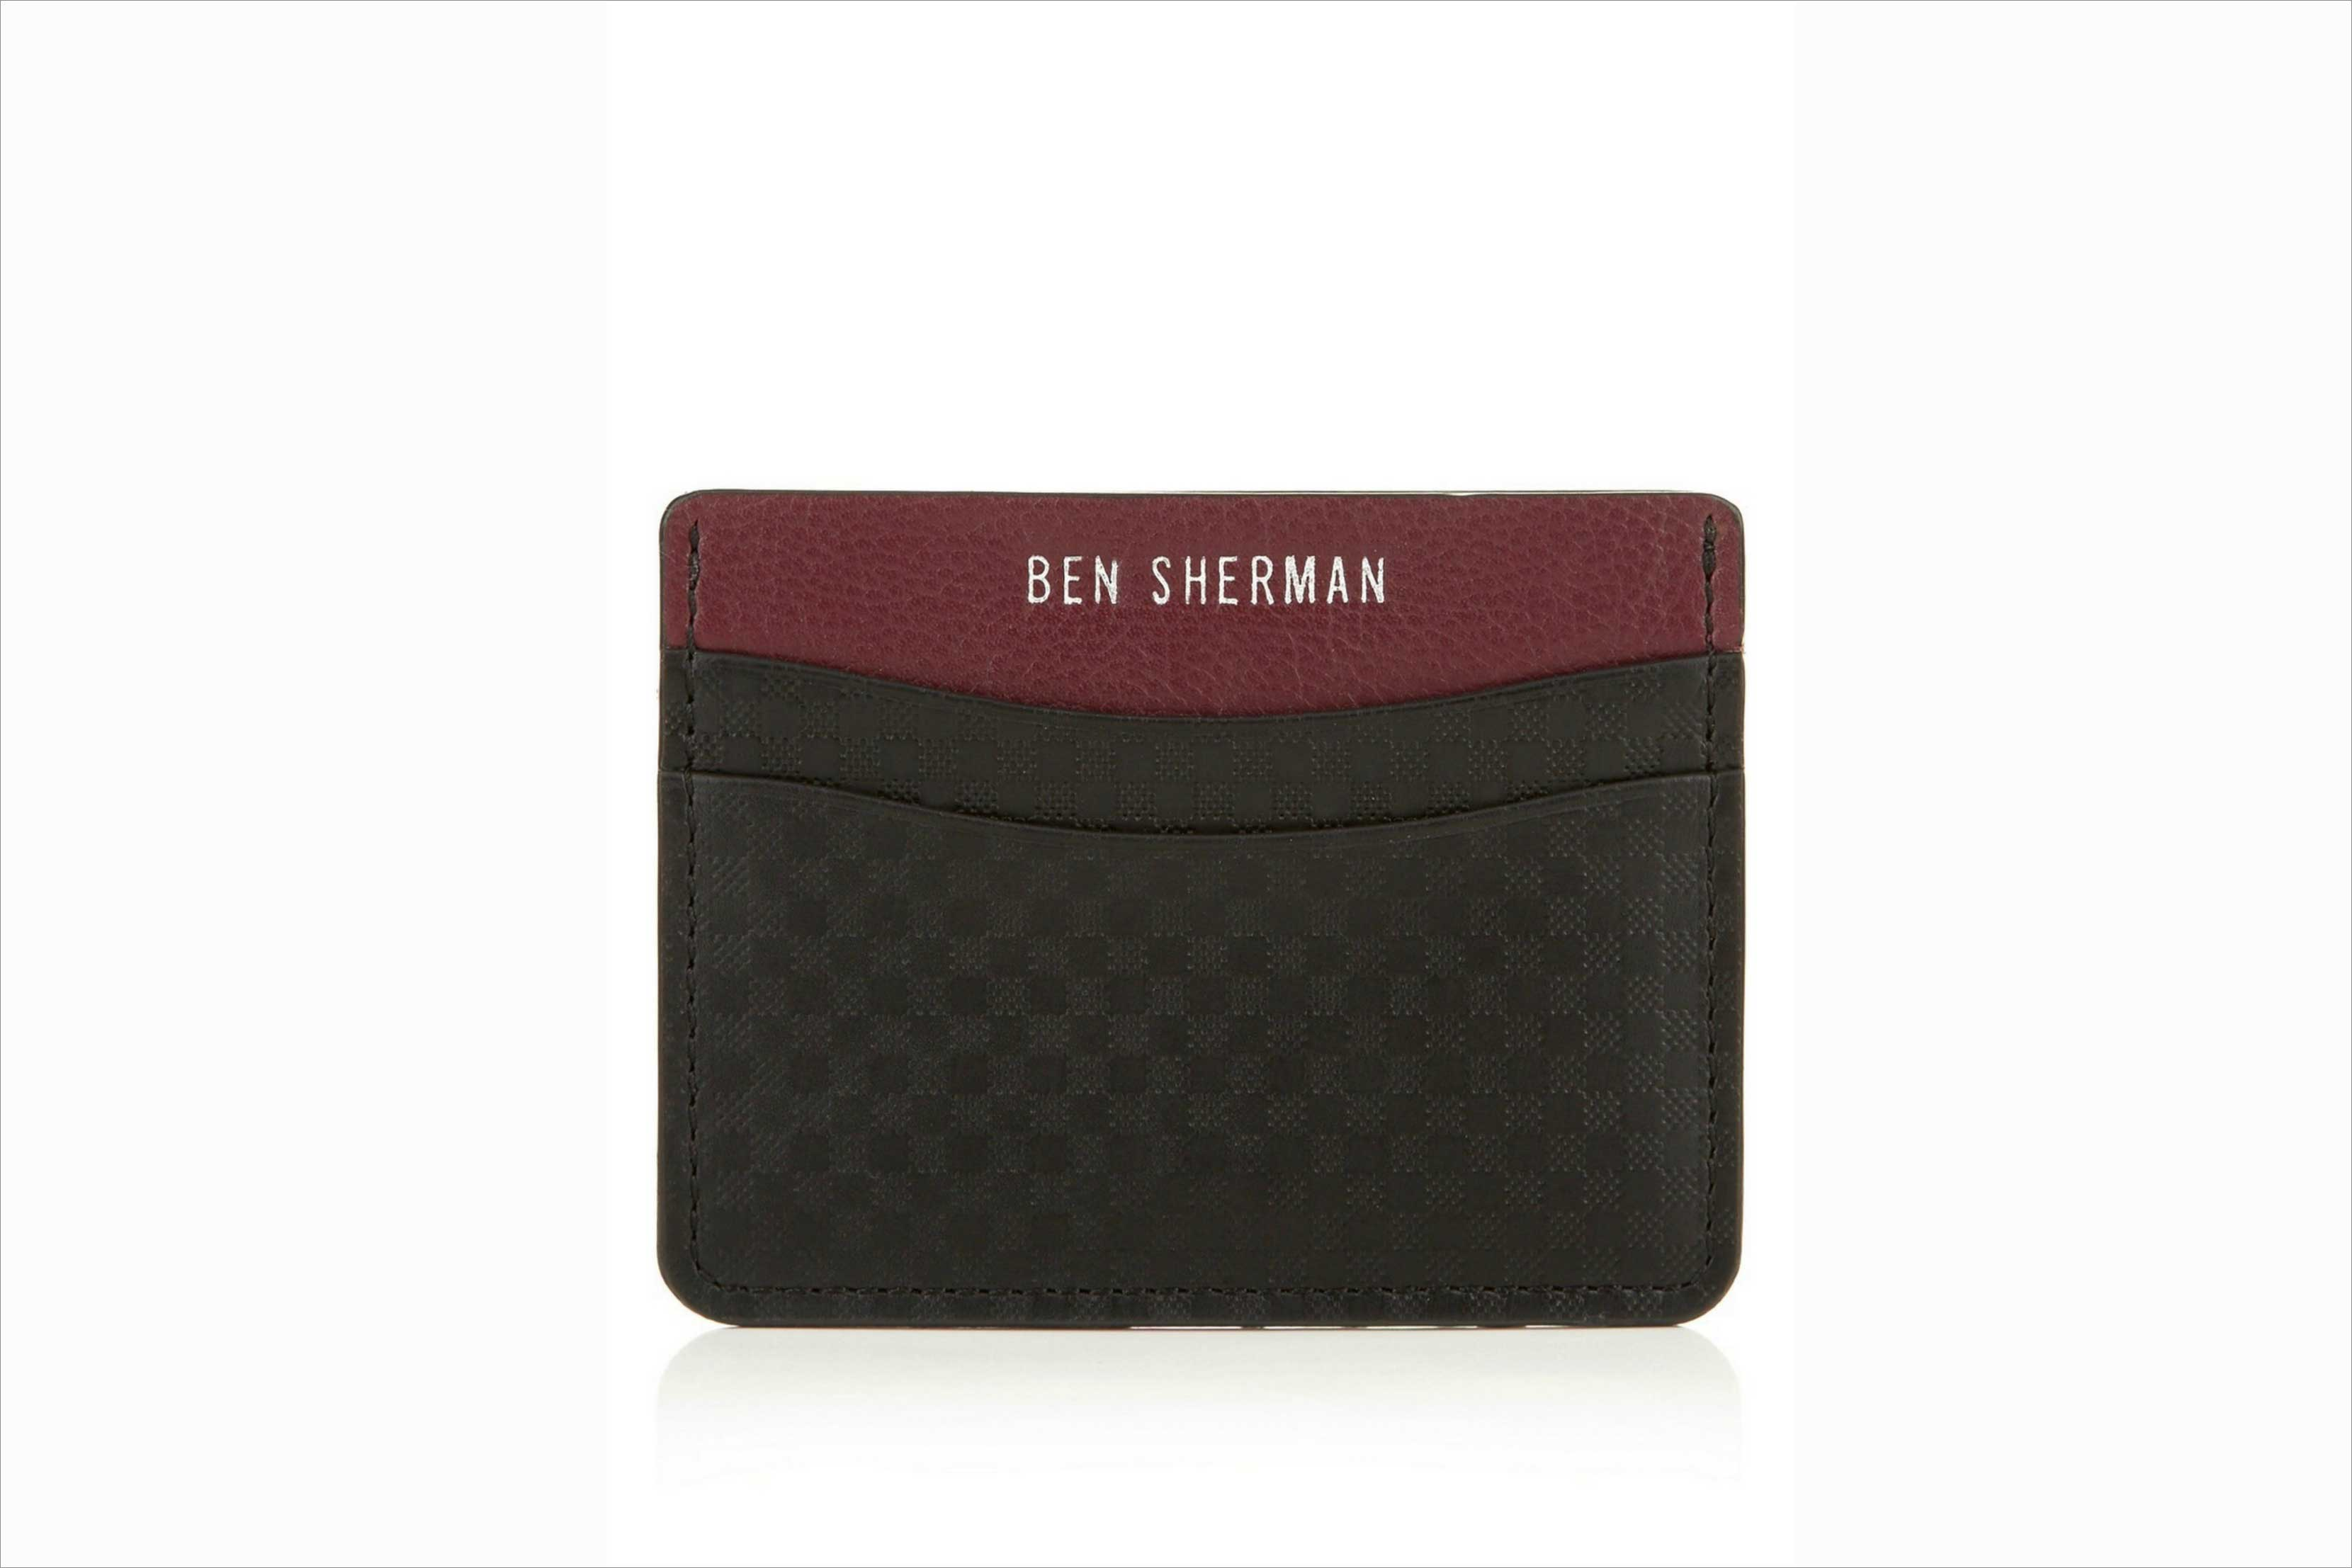 Ben Sherman Gingham Emboss Card Holder in red and black